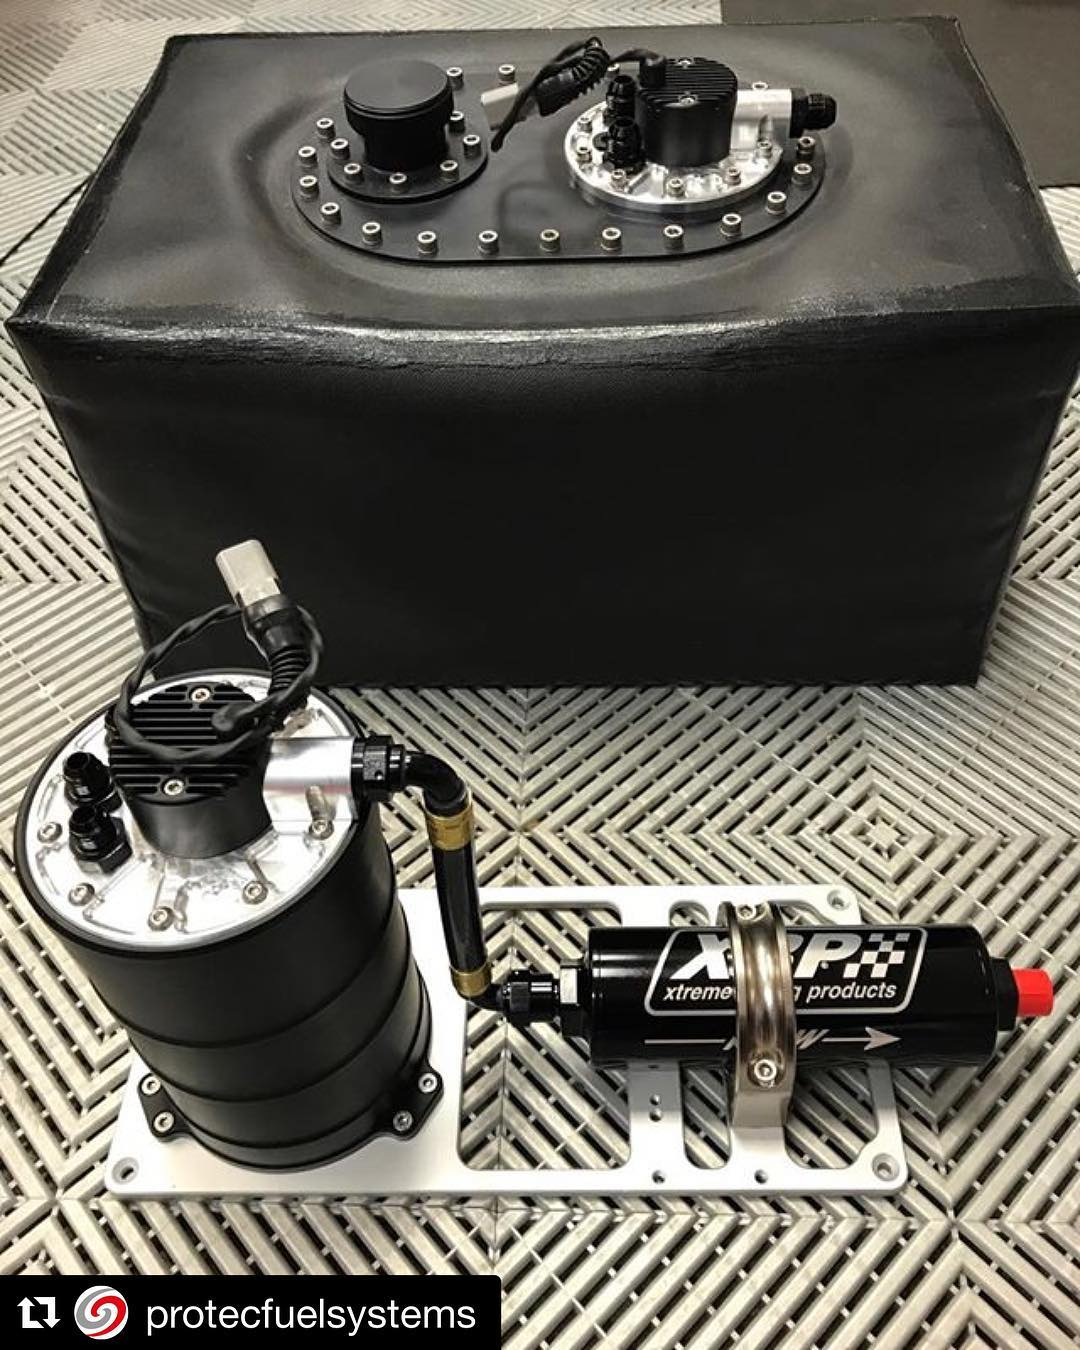 Protecfuelsystems ・・・ Brushless Fst Or Fuel Plate Mount You Choose The New Cobra Modular